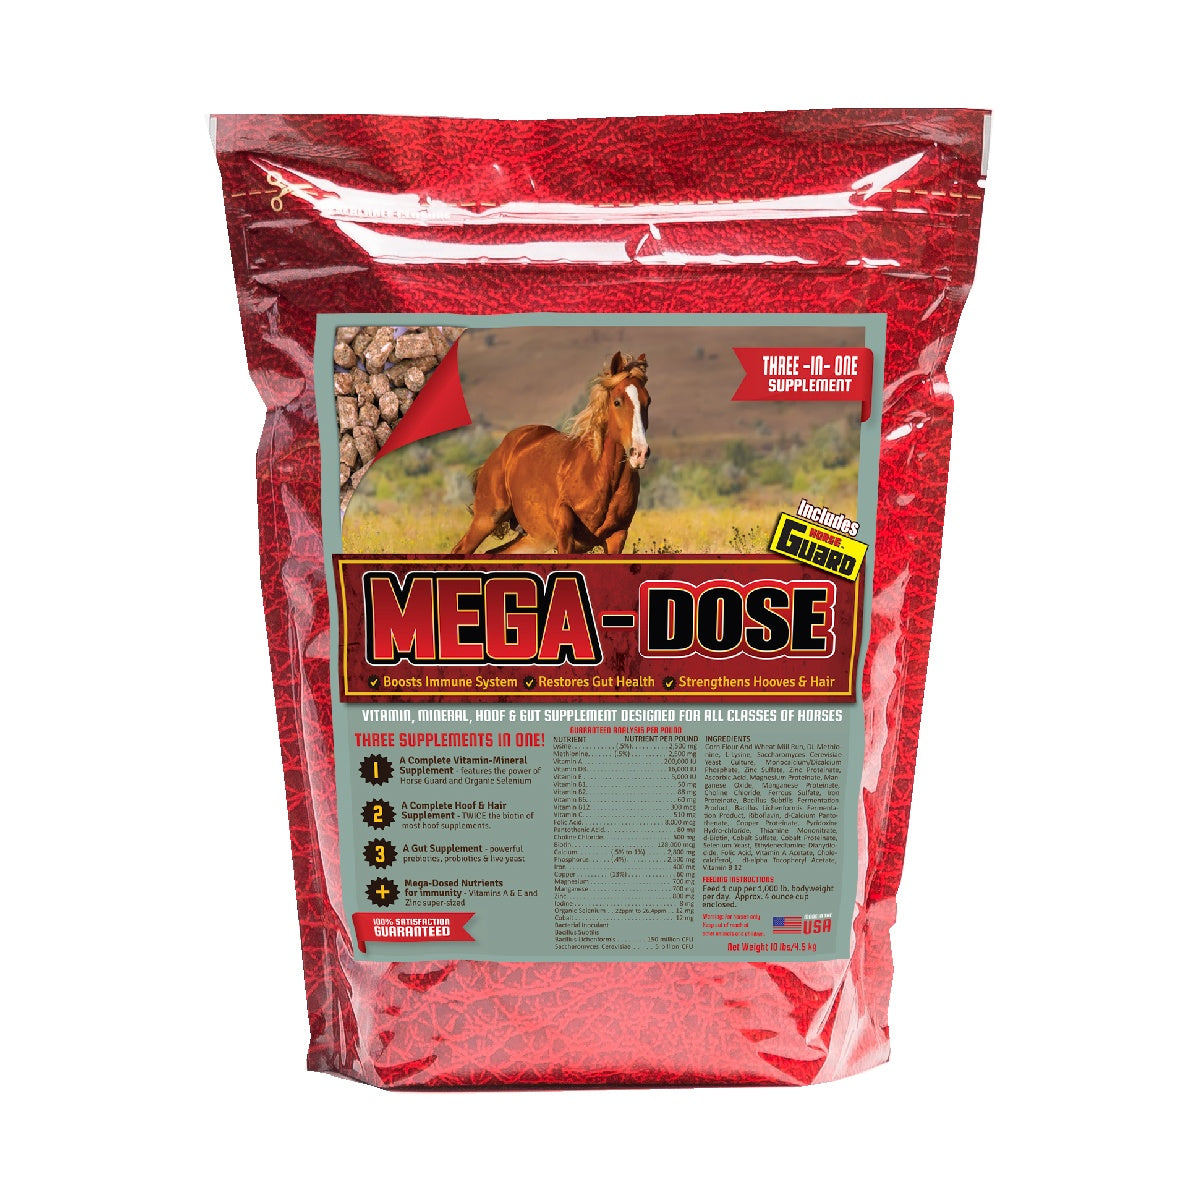 Mega Dose 10lb Front Supplement by Horse Guard